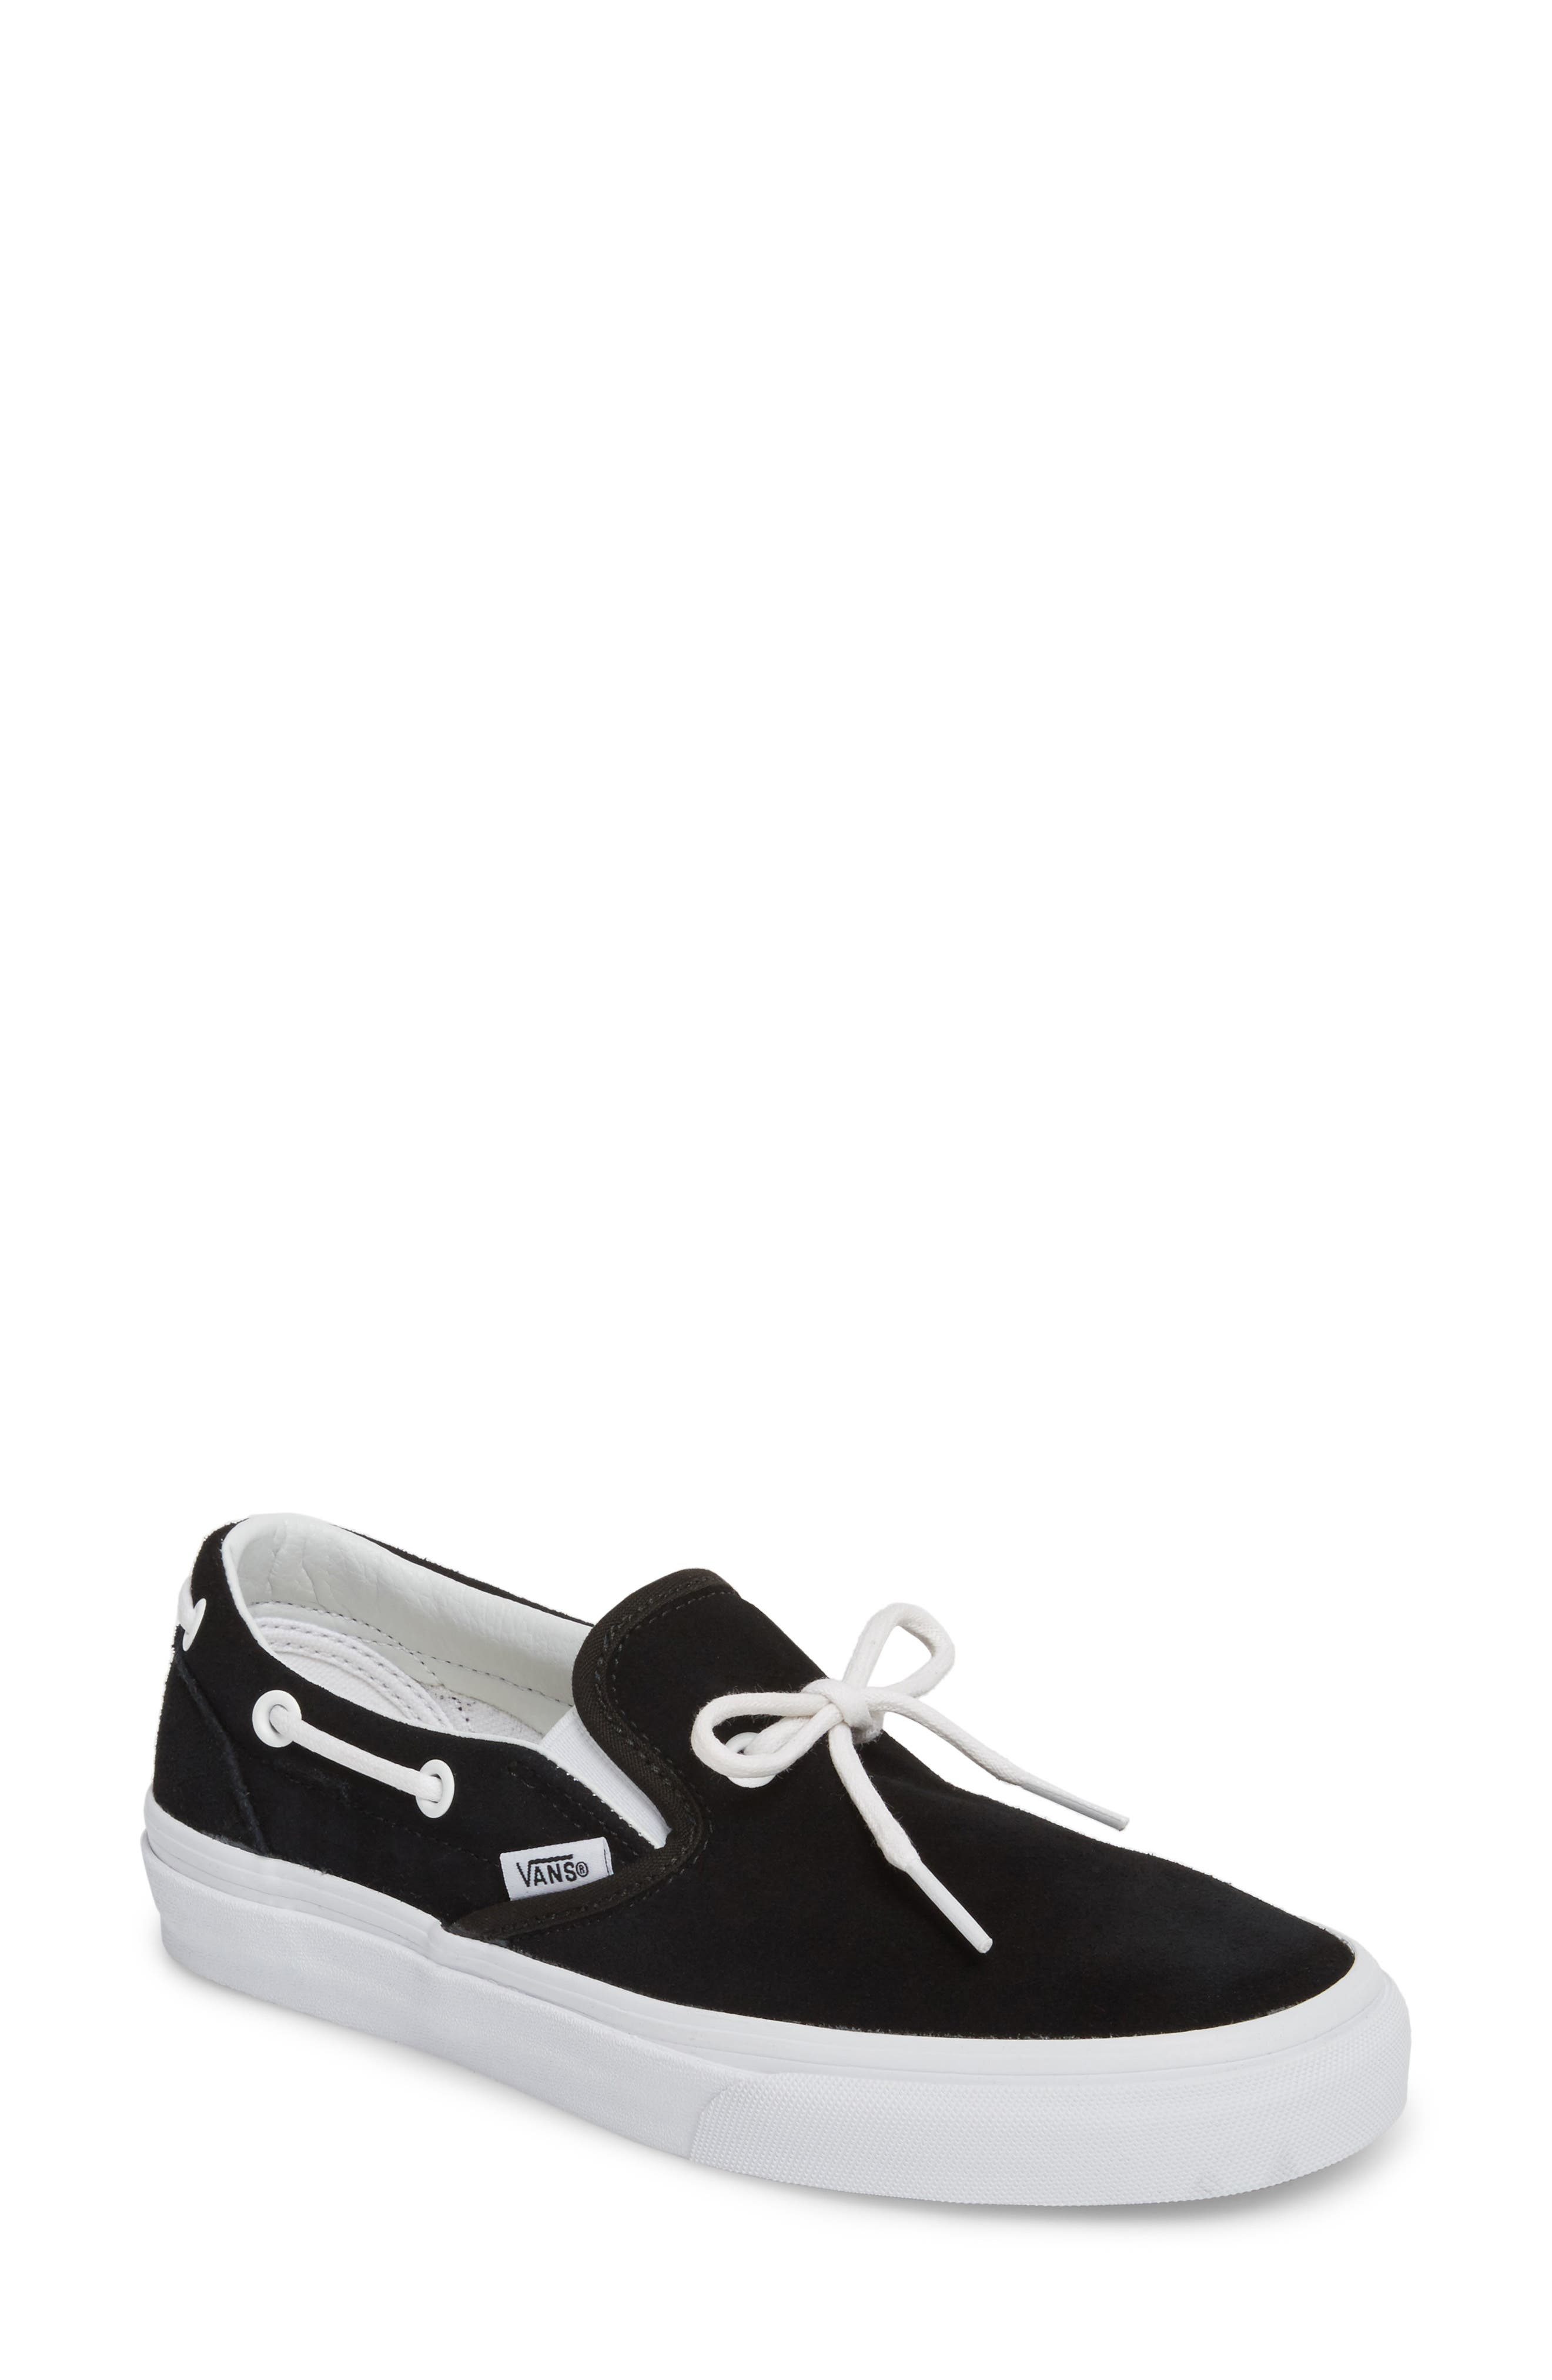 UA Lacey 72 Slip-On Boat Sneaker,                             Main thumbnail 1, color,                             Black Leather